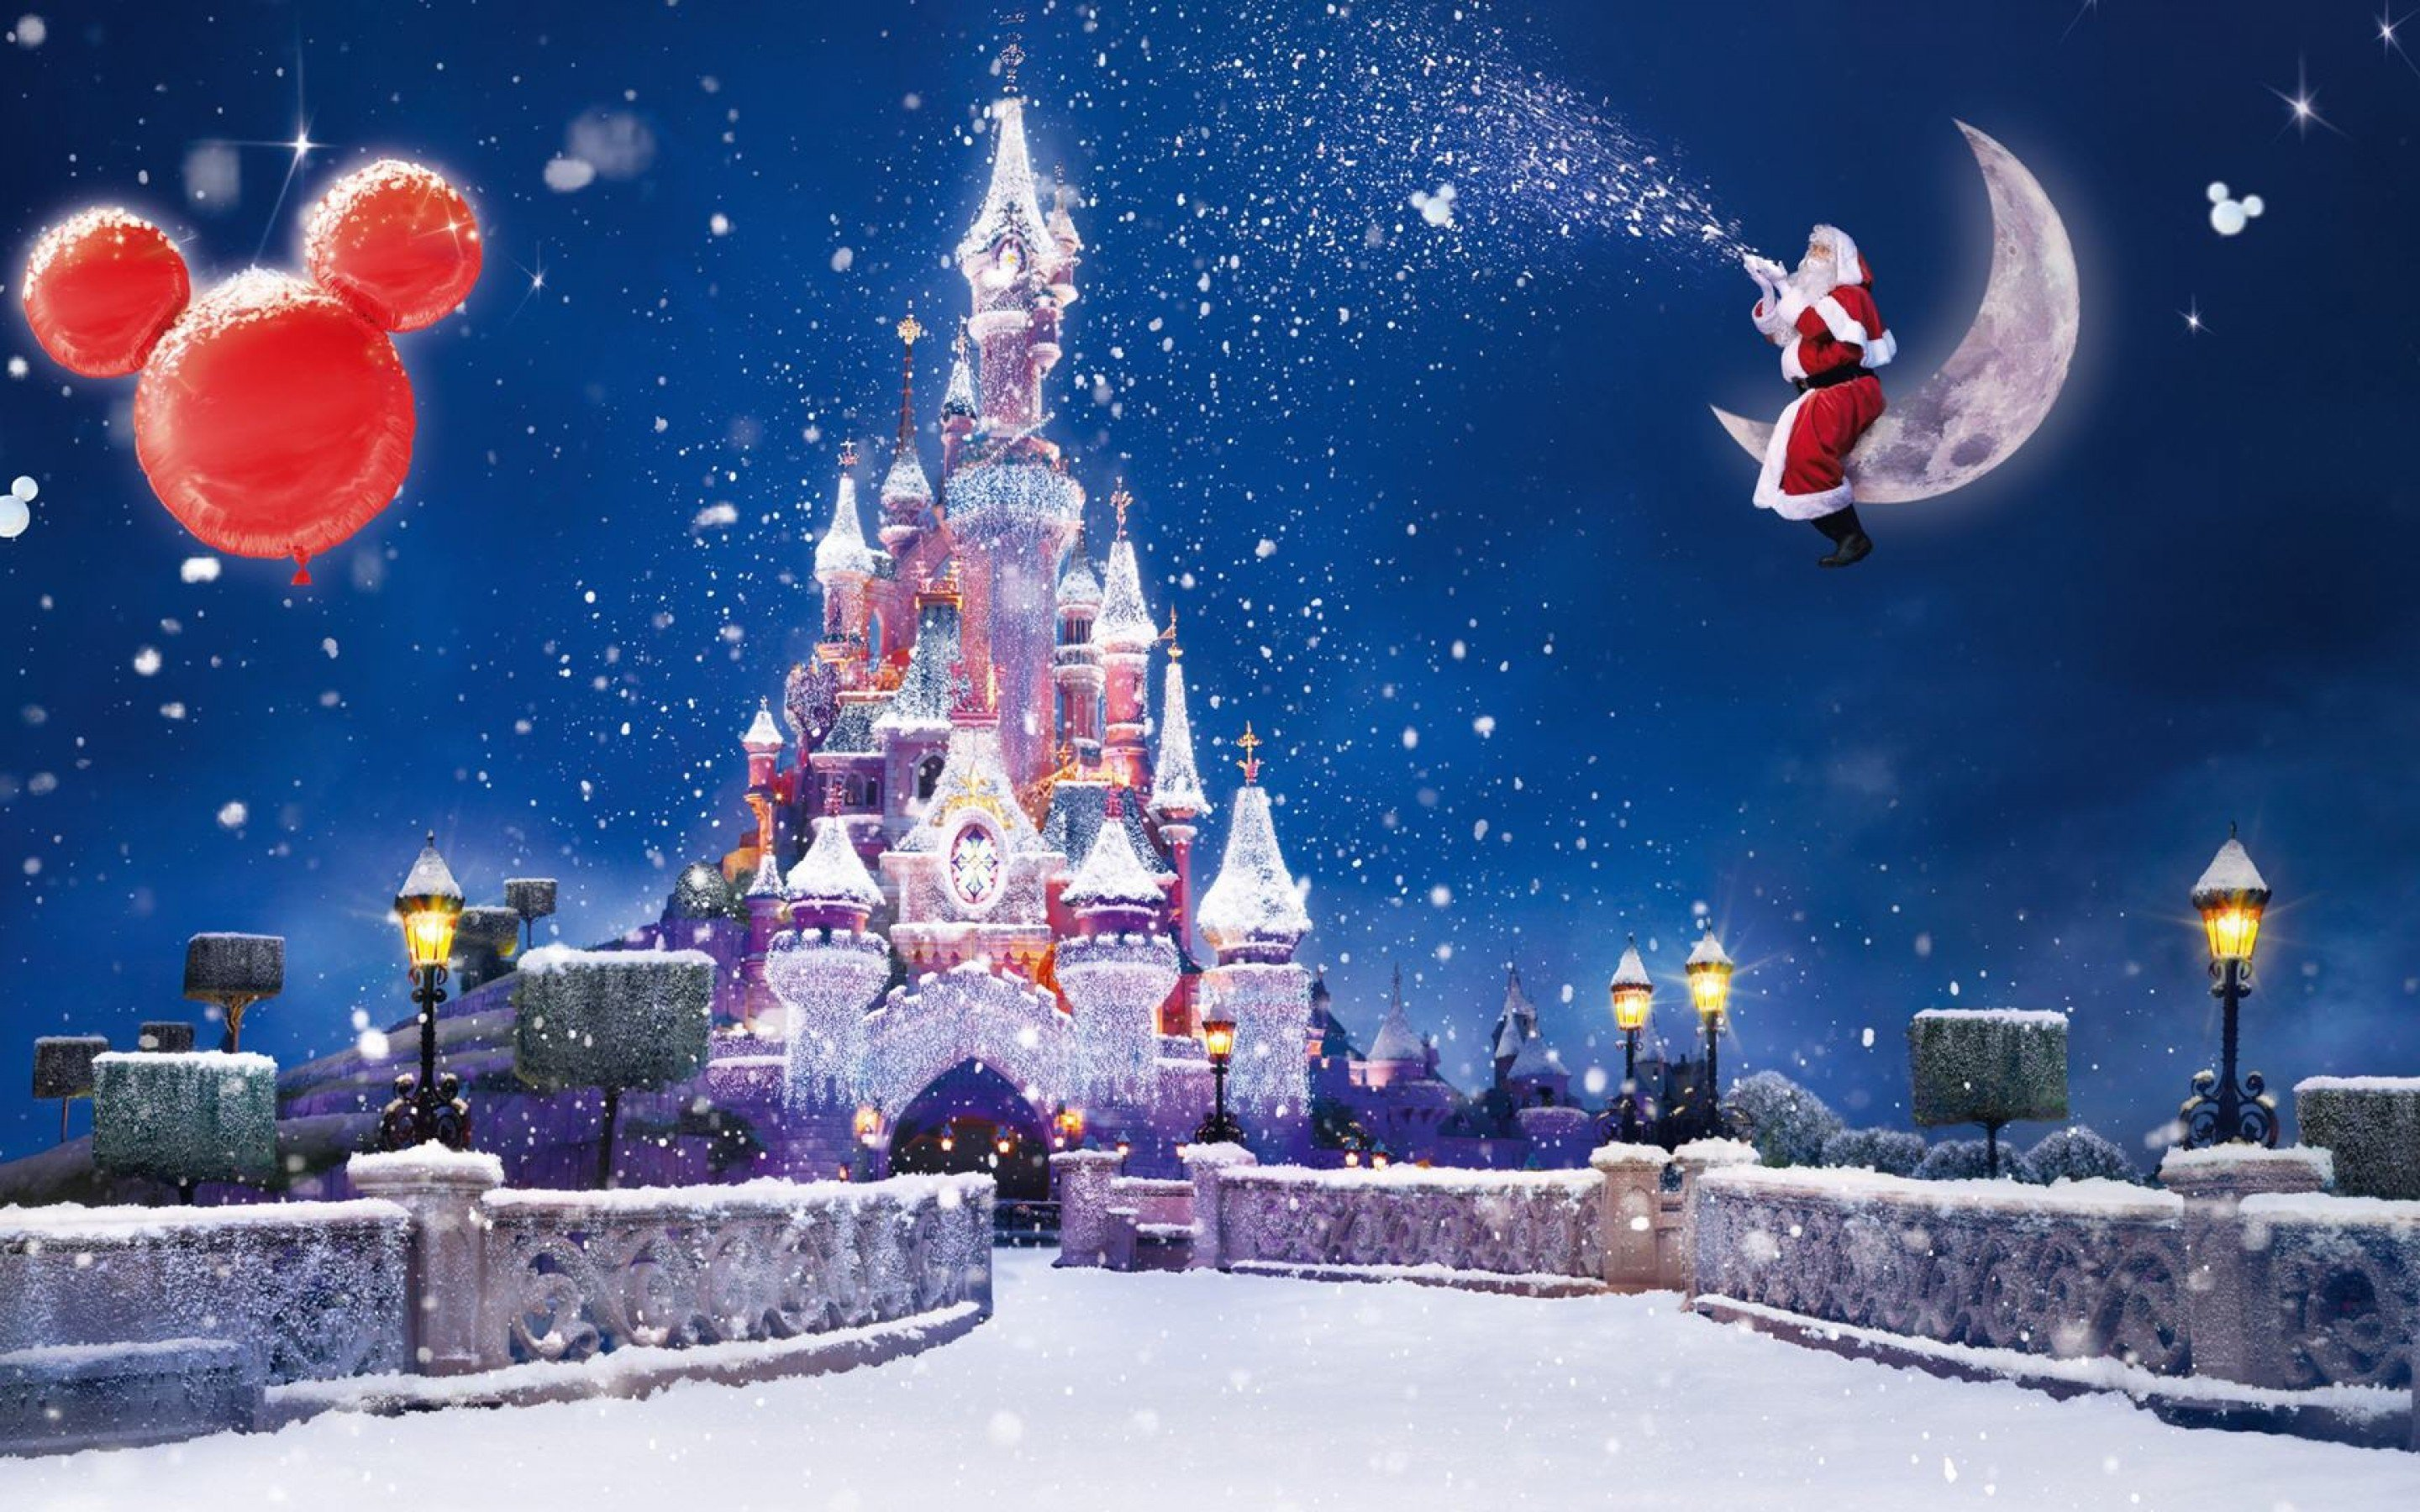 Christmas Disney Castle Desktop Wallpaper Wallpapers Funny PIC